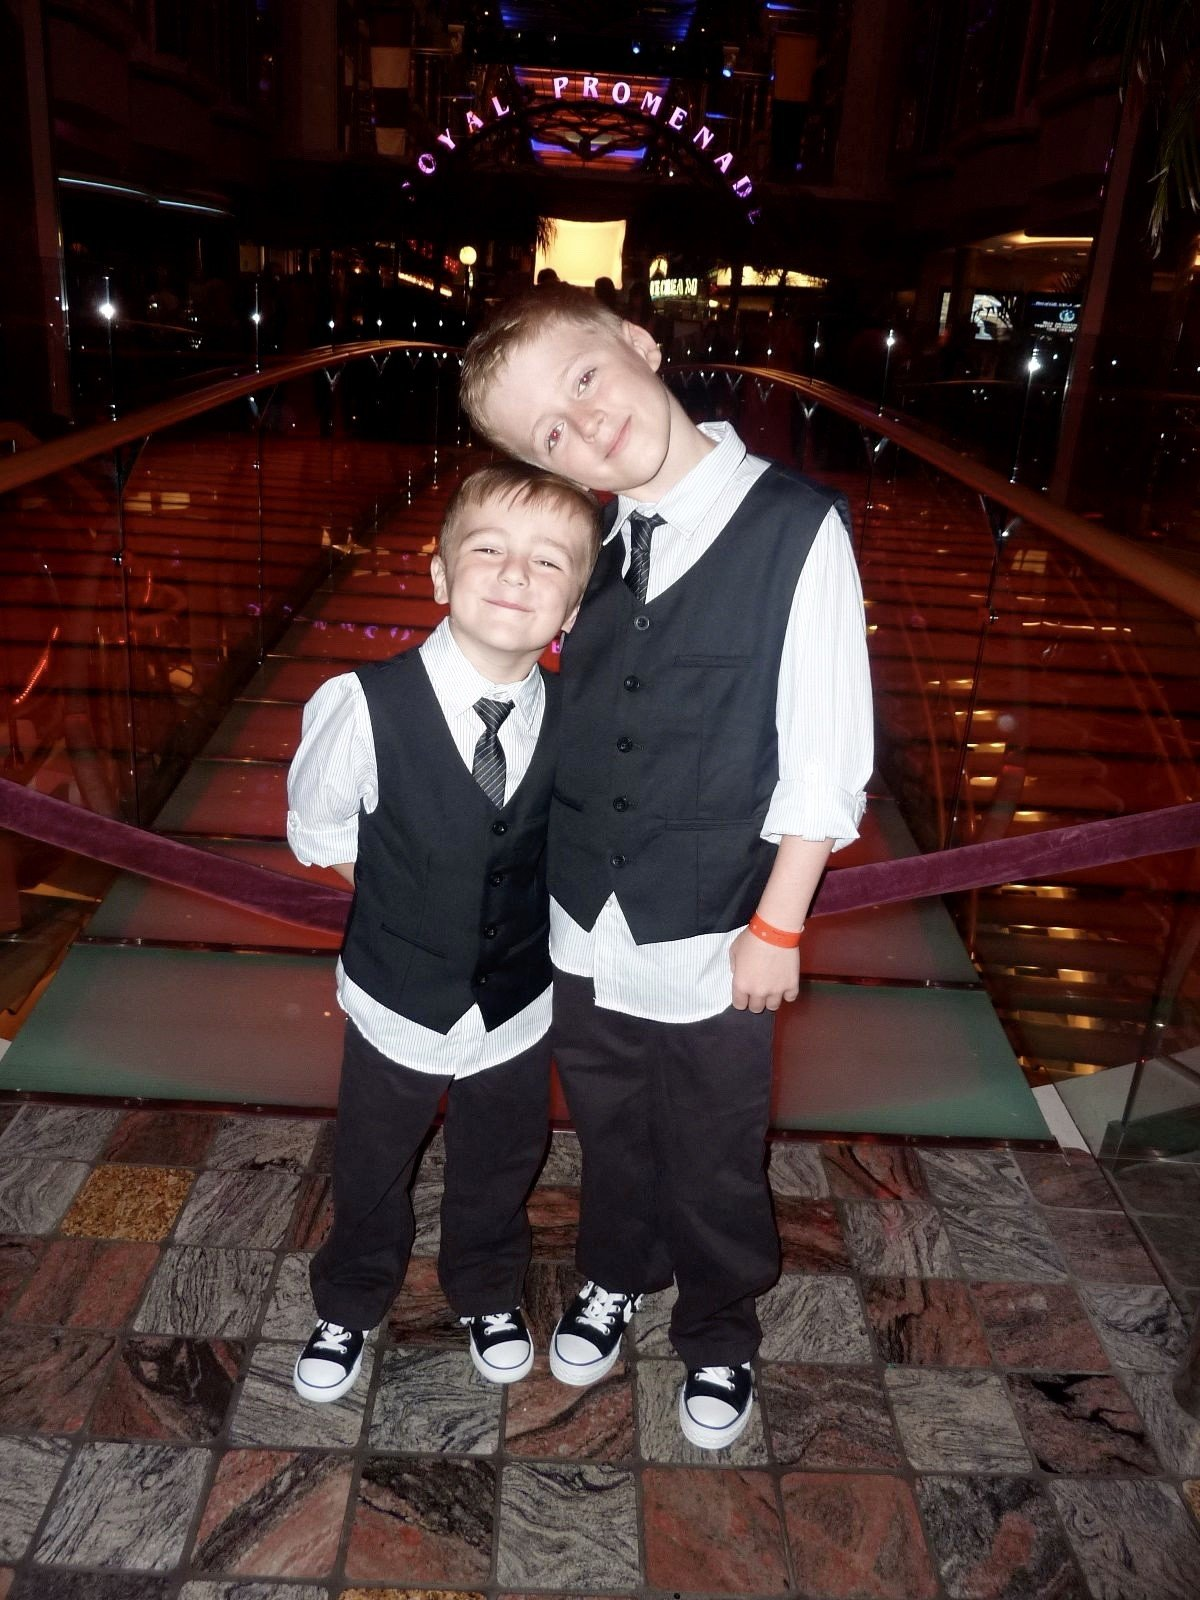 Pisa! 10 things I love about cruising Royal Caribbean Independence of the Seas boys in suits and converse